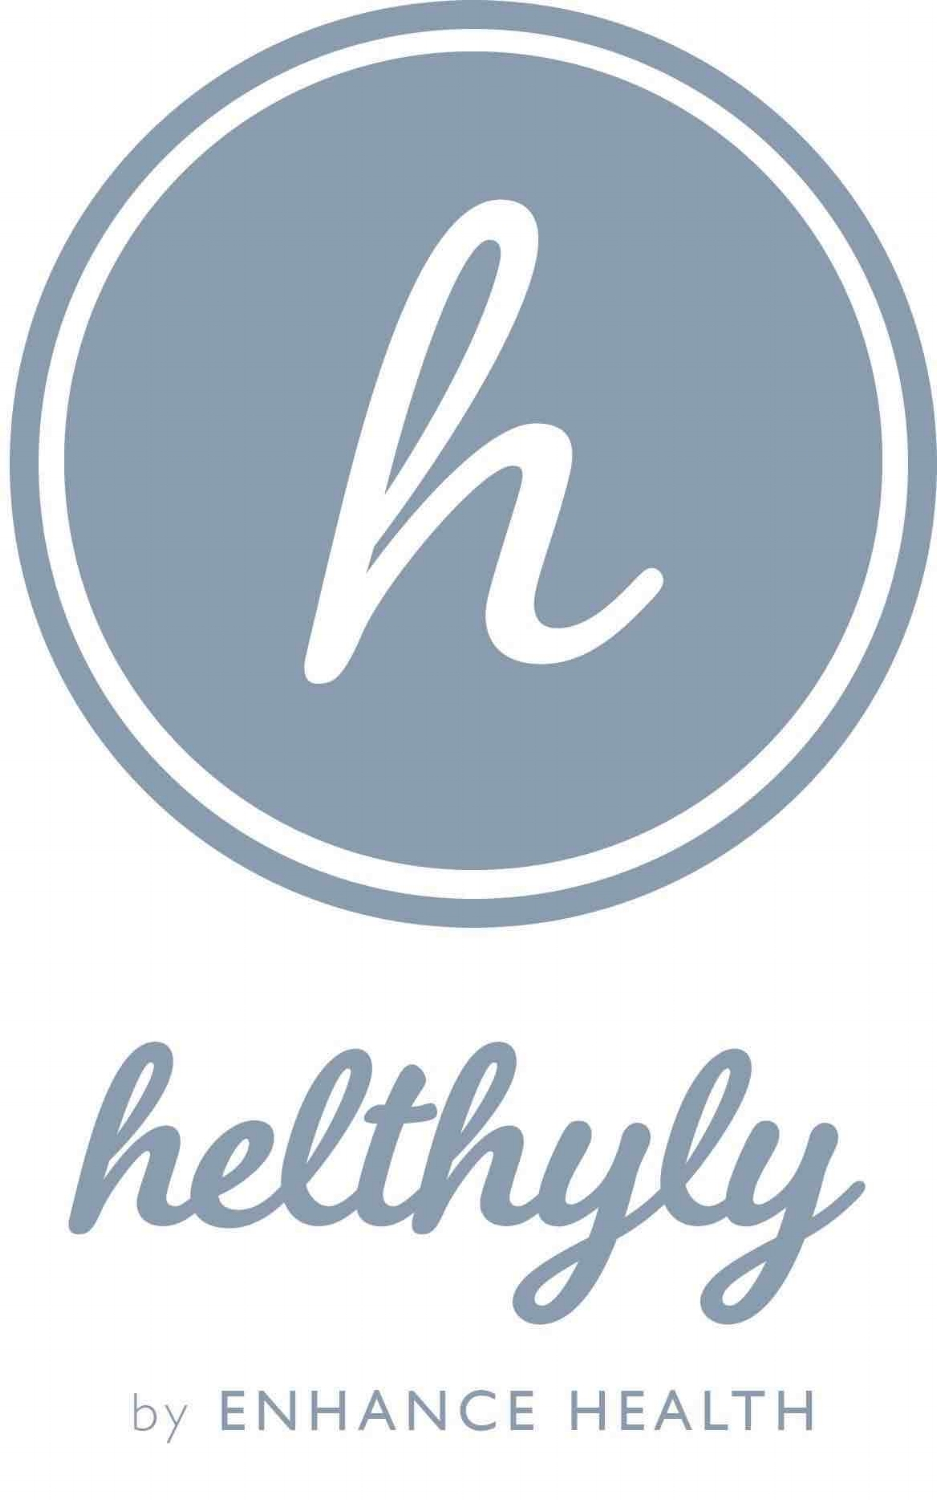 helthyly_logo_final_rev copy 2.jpg